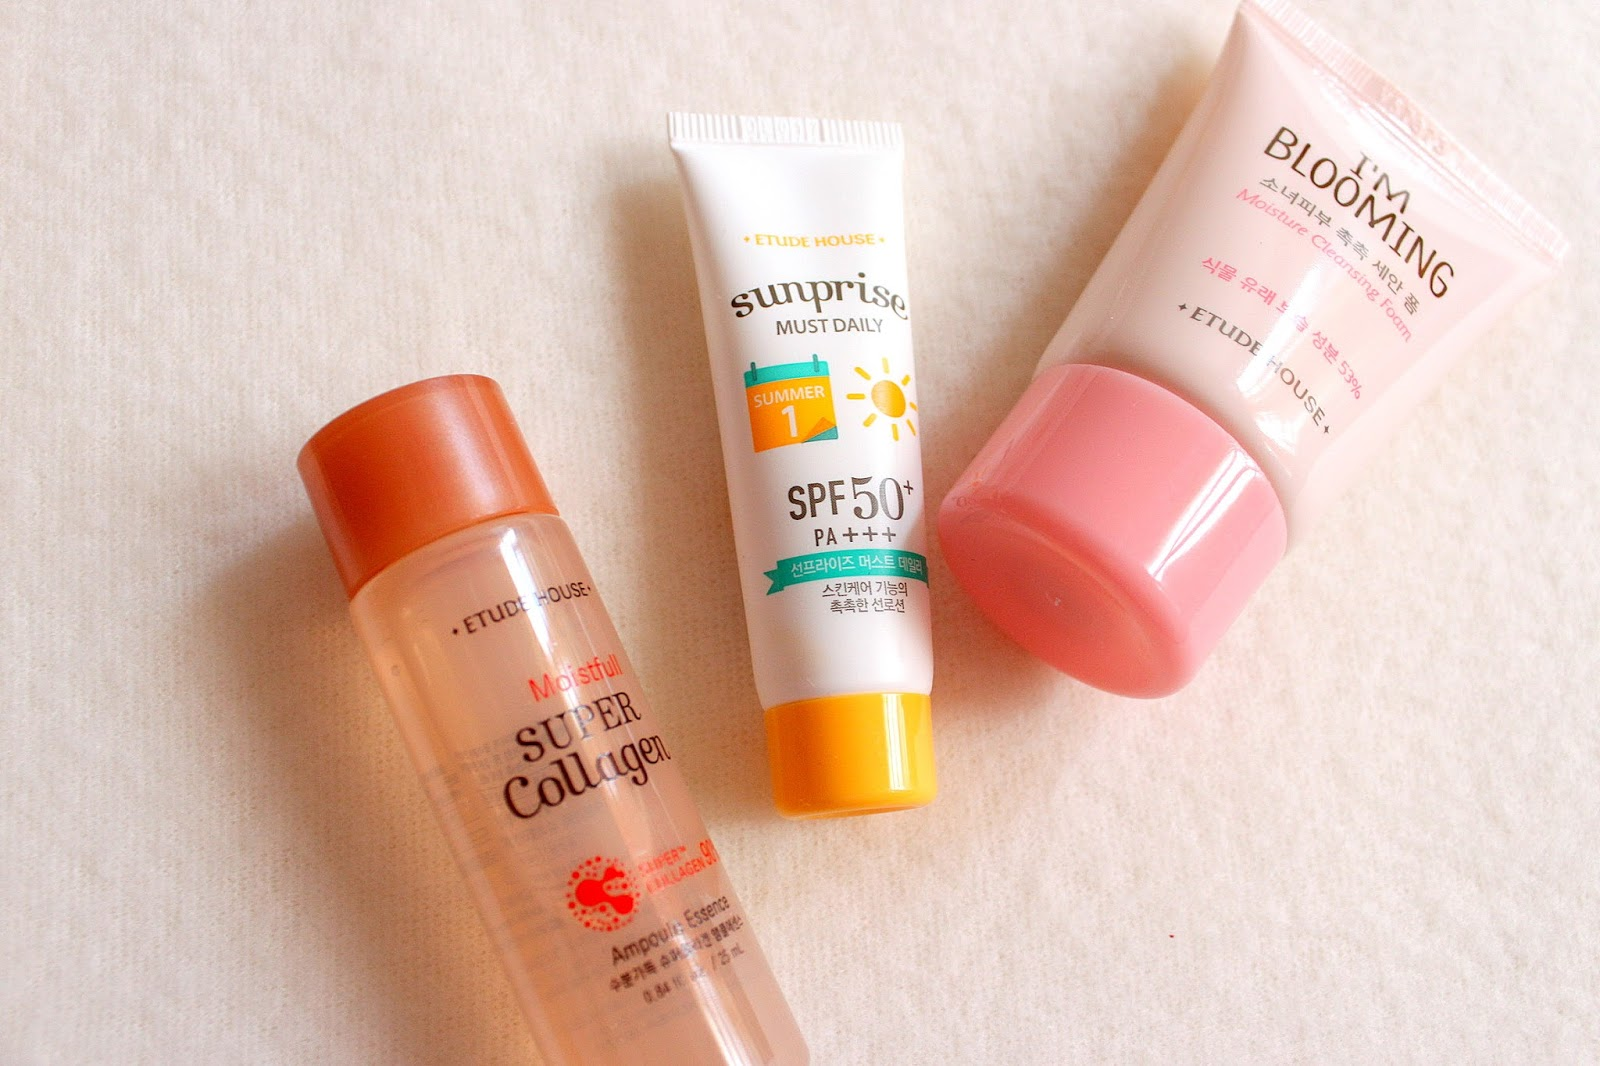 Etude House Moistfull Super Collagen Trial Kit Dubhe Joy These Three Products Are Really Amazing Ill Definitely Look For Sunprise And Im Blooming Maybe If The Budget Permits